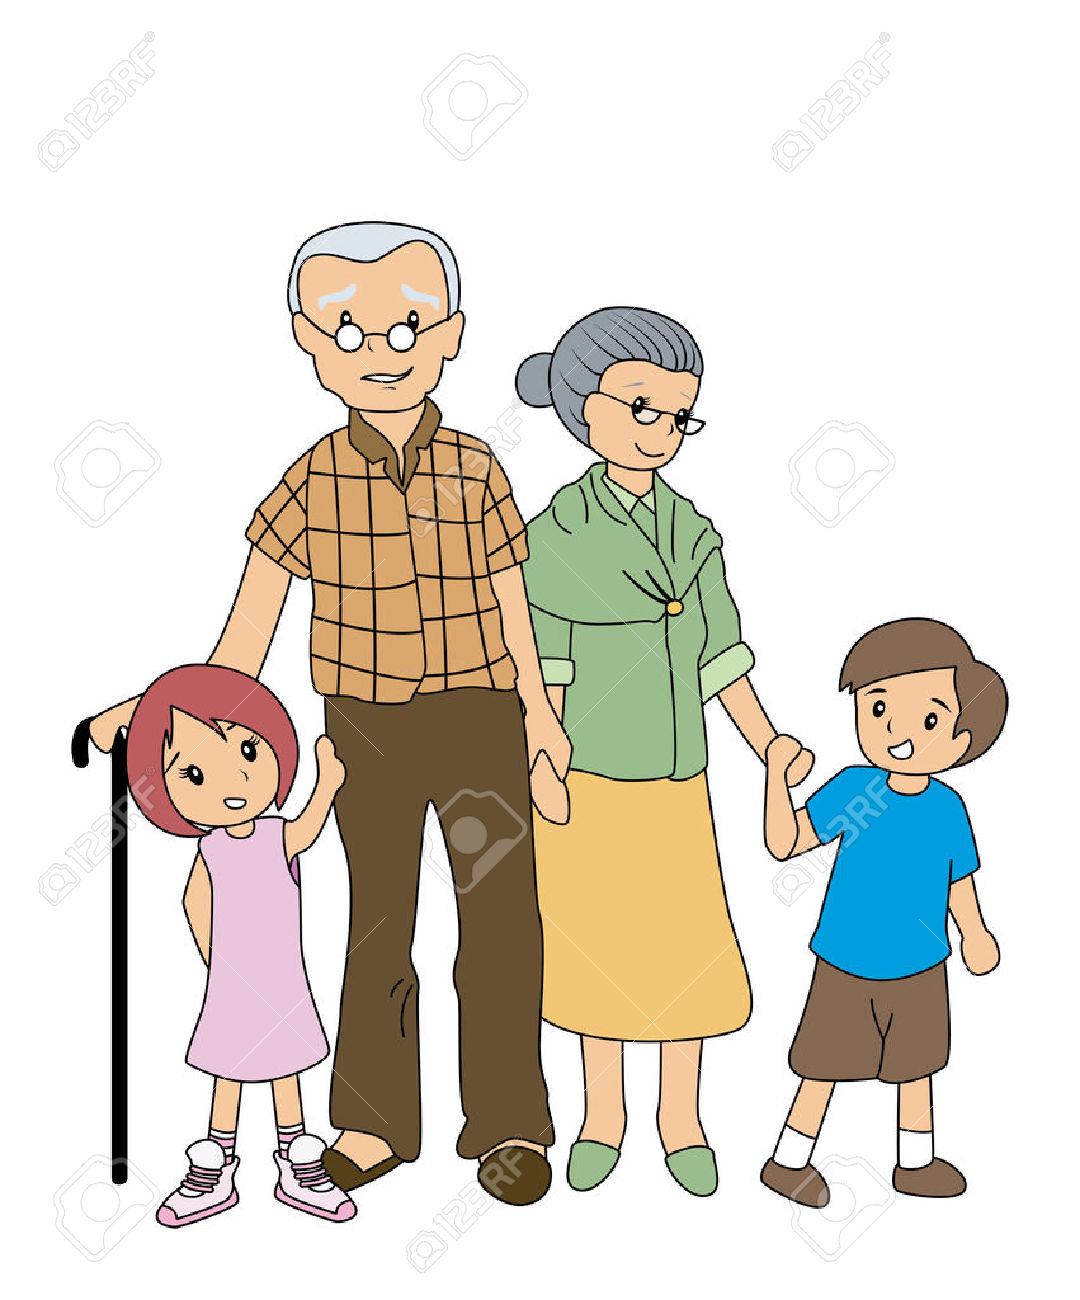 grandparent clipart free clipart panda free clipart images rh clipartpanda com family grandparents clipart clip art grandparents uk